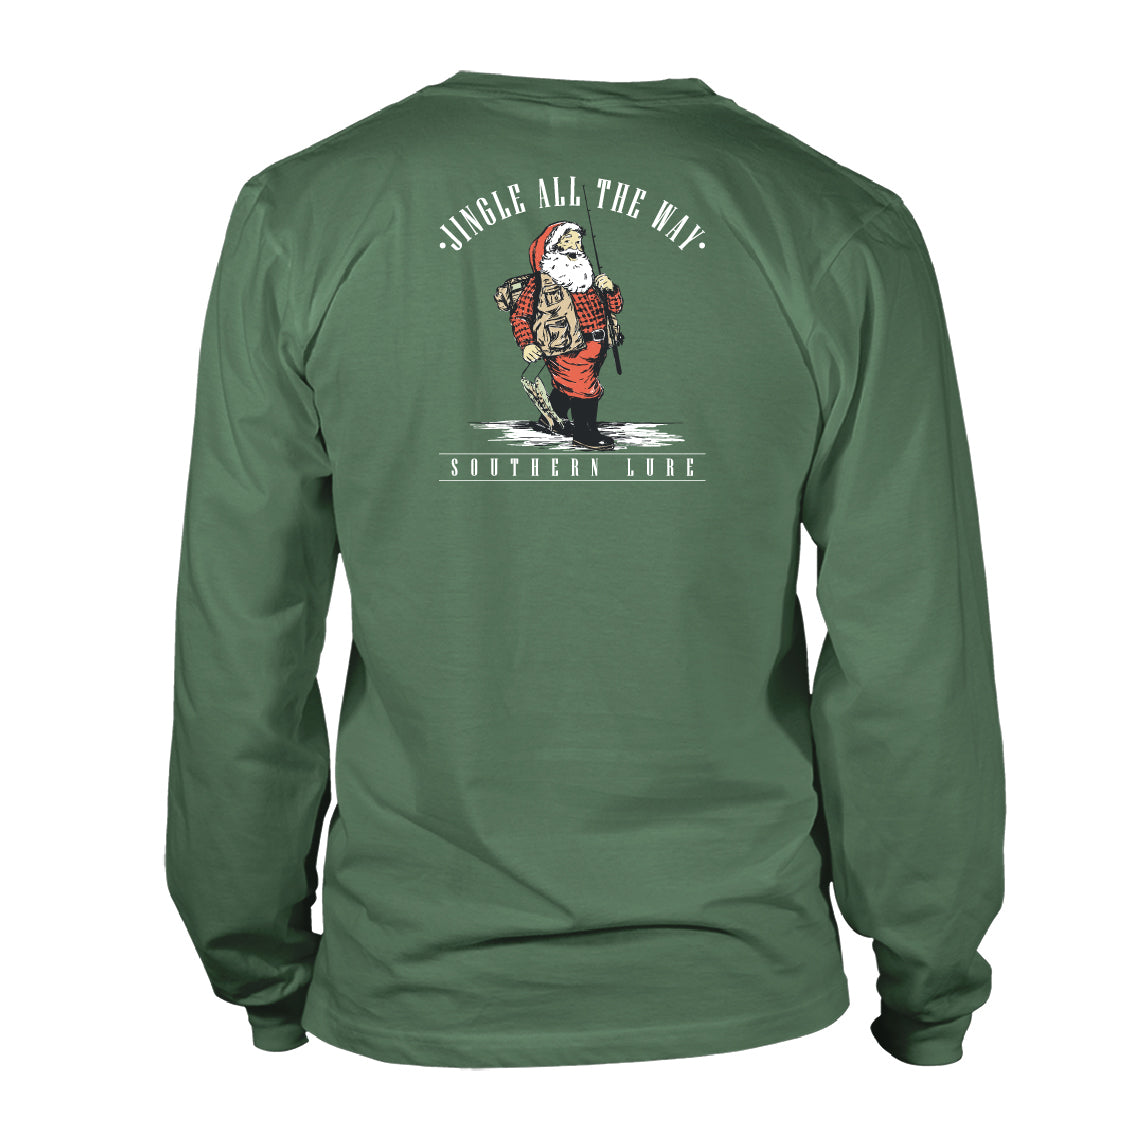 Boy's Youth & Toddler Long Sleeve Cotton Tee - Fishing Santa - Oak Green